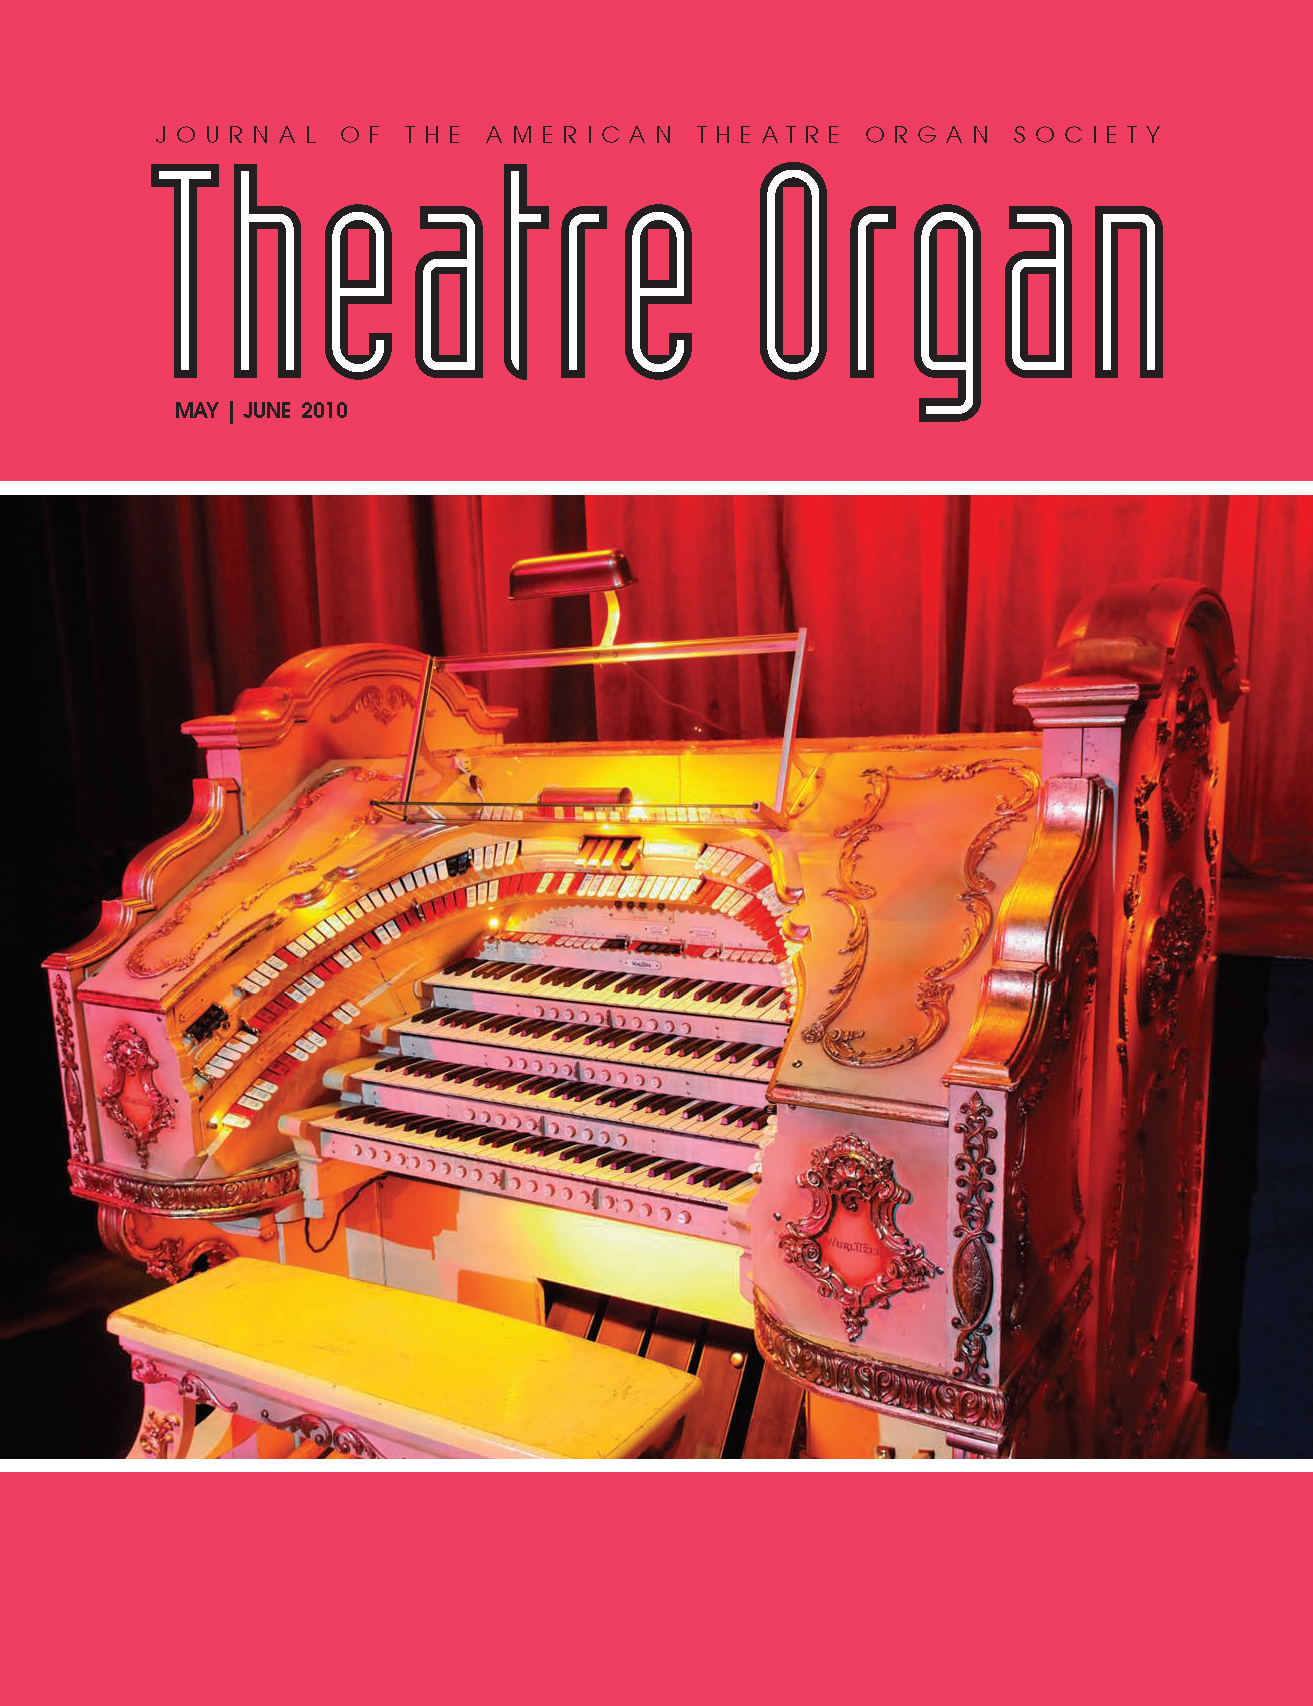 Theatre Organ, May - June 2010, Volume 52, Number 3